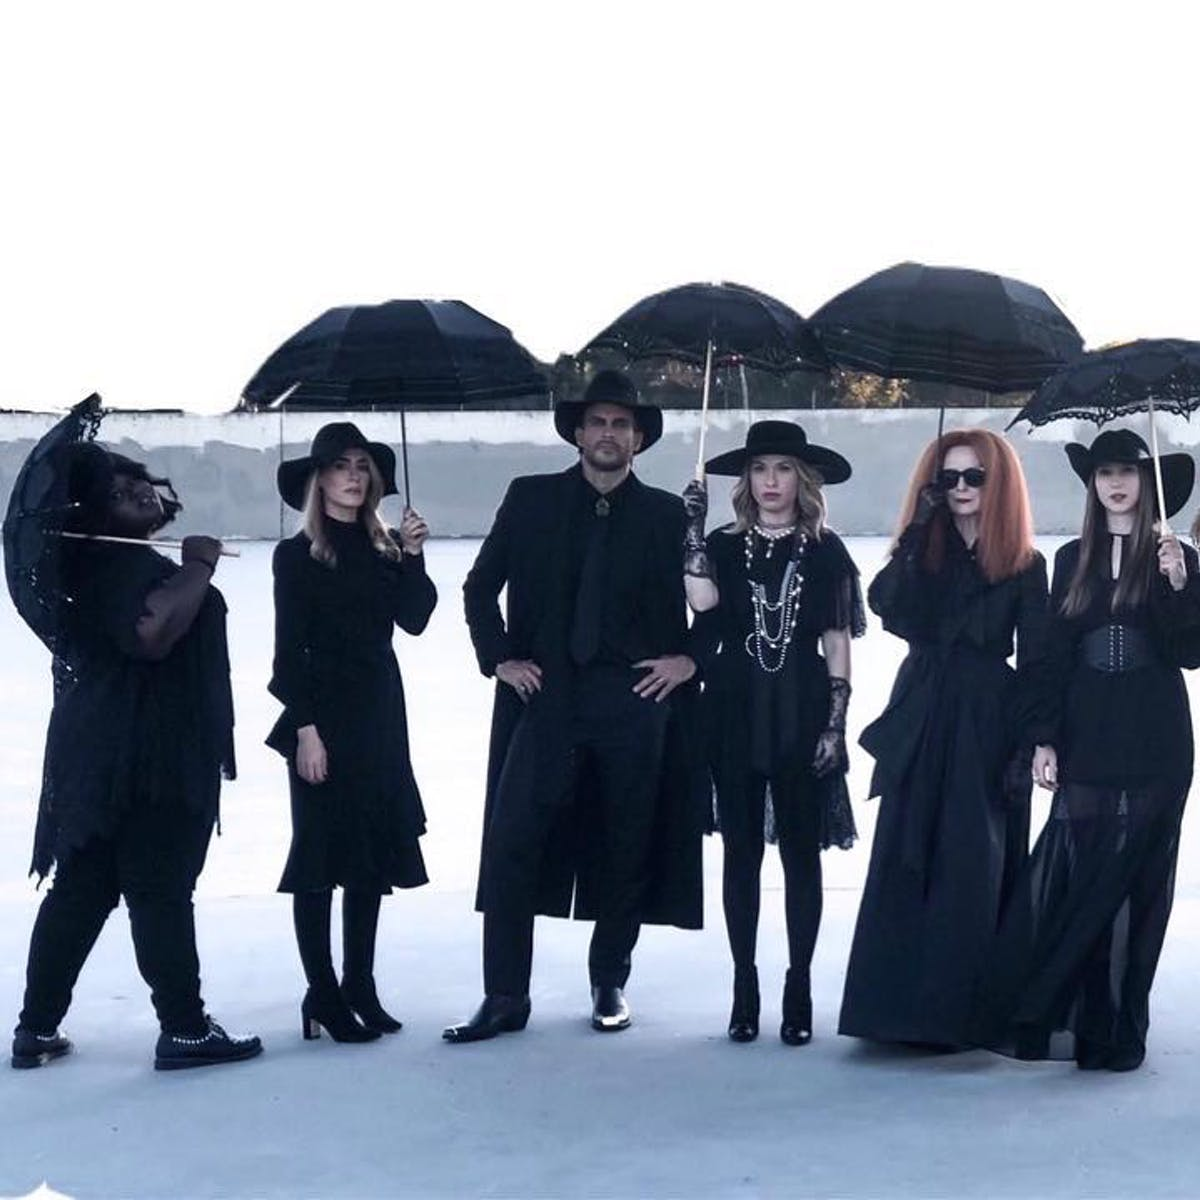 AHS' Season 8 Spoilers: One Coven Member Might Not Be a